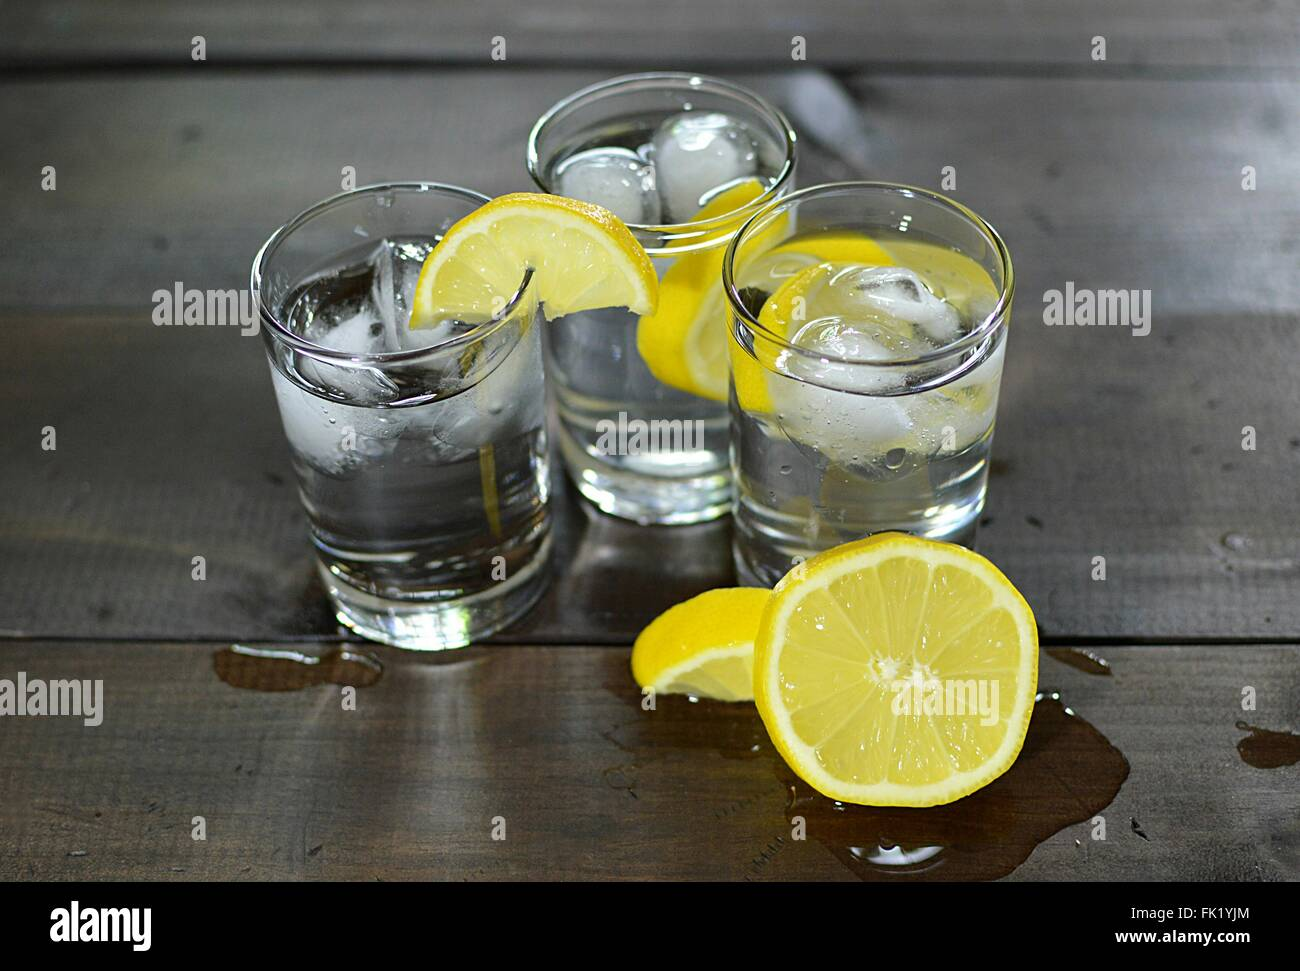 High angel view of glasses of water and lemon slices. - Stock Image